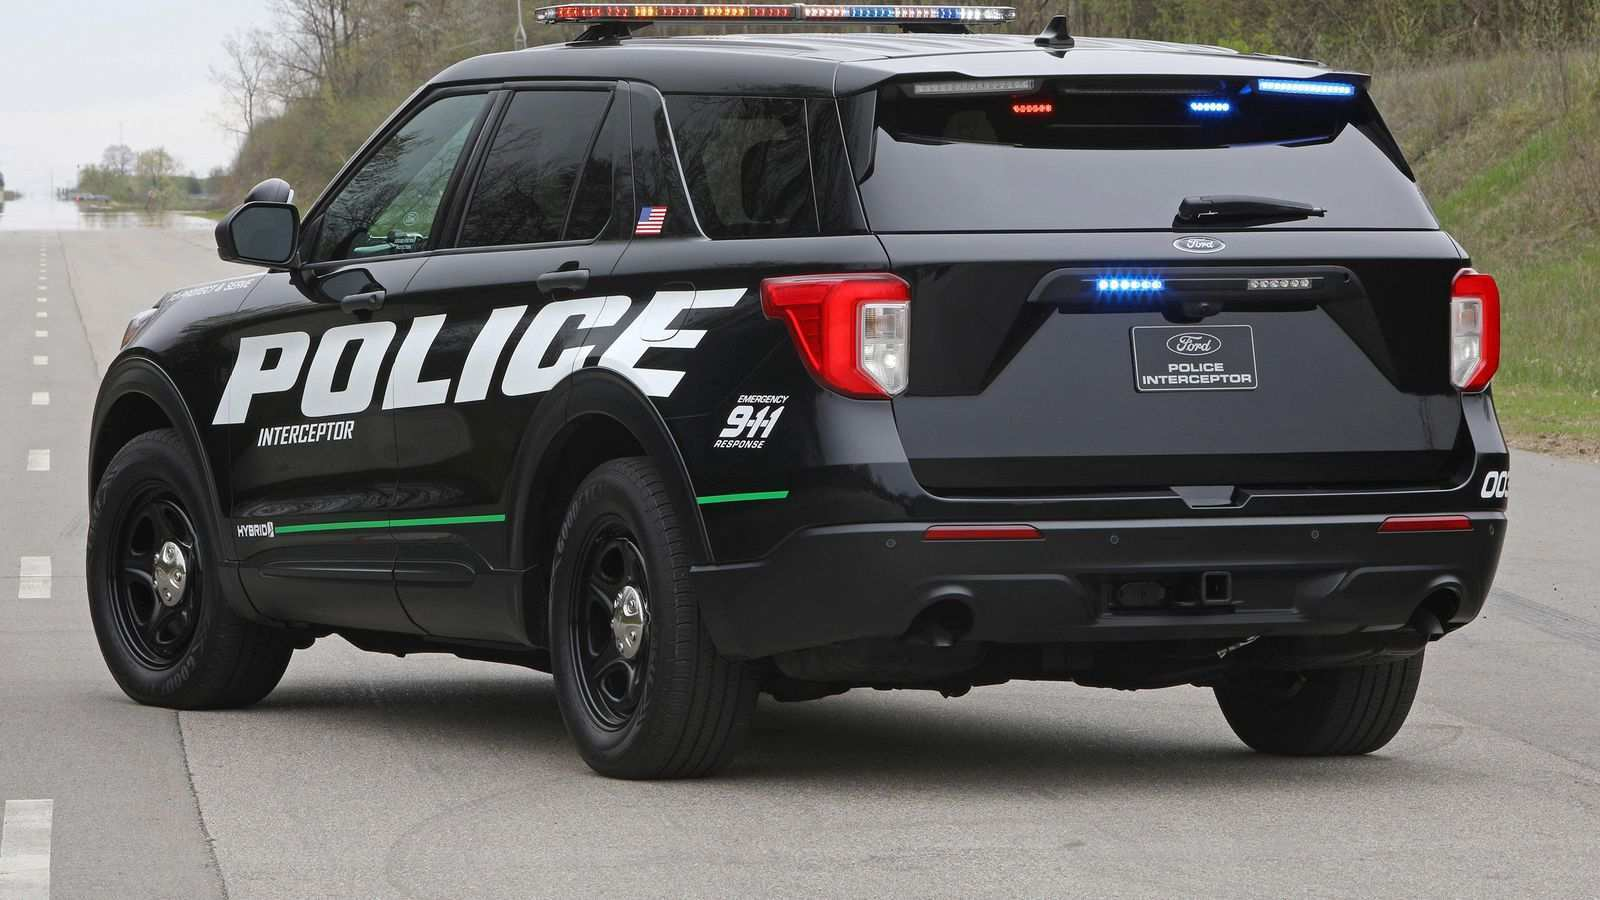 69 All New Ford Police Interceptor 2020 Exterior